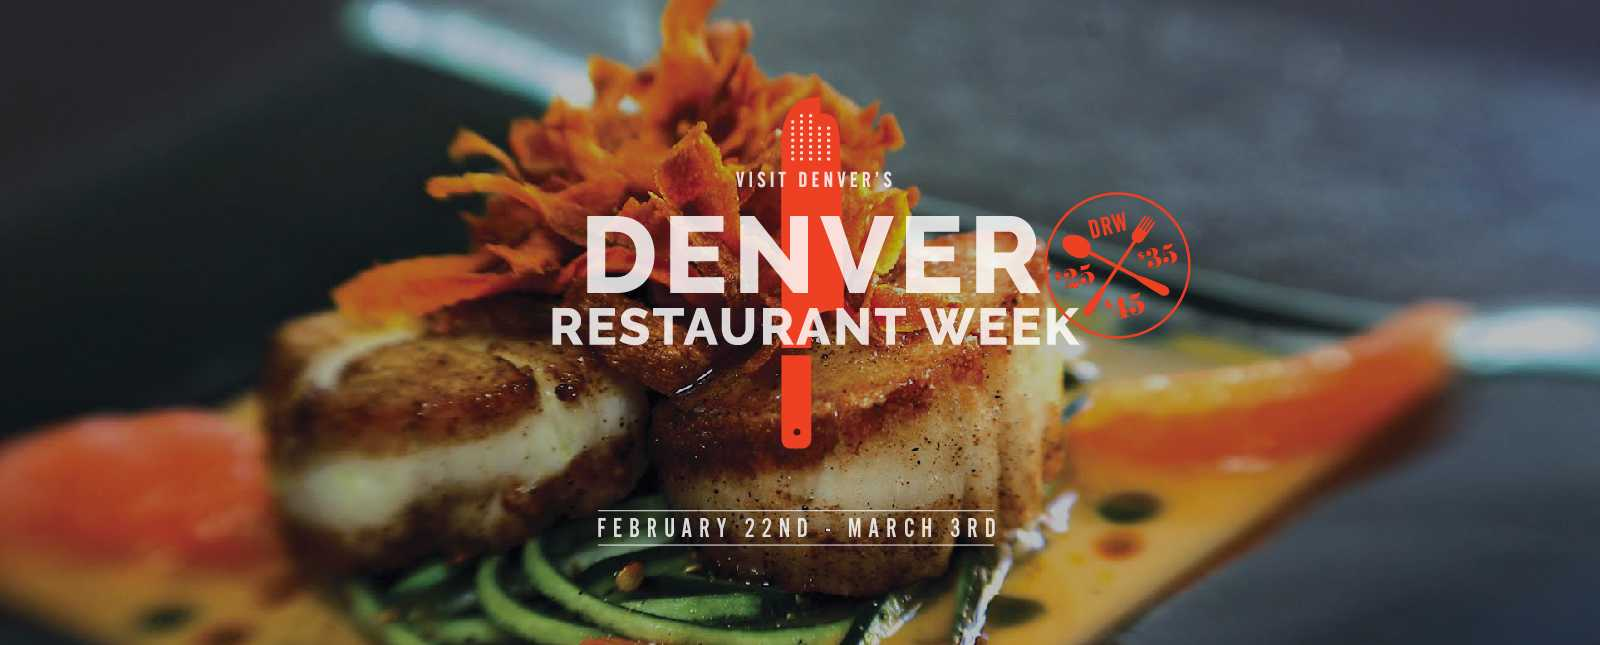 DENVER RESTAURANT WEEK 2019